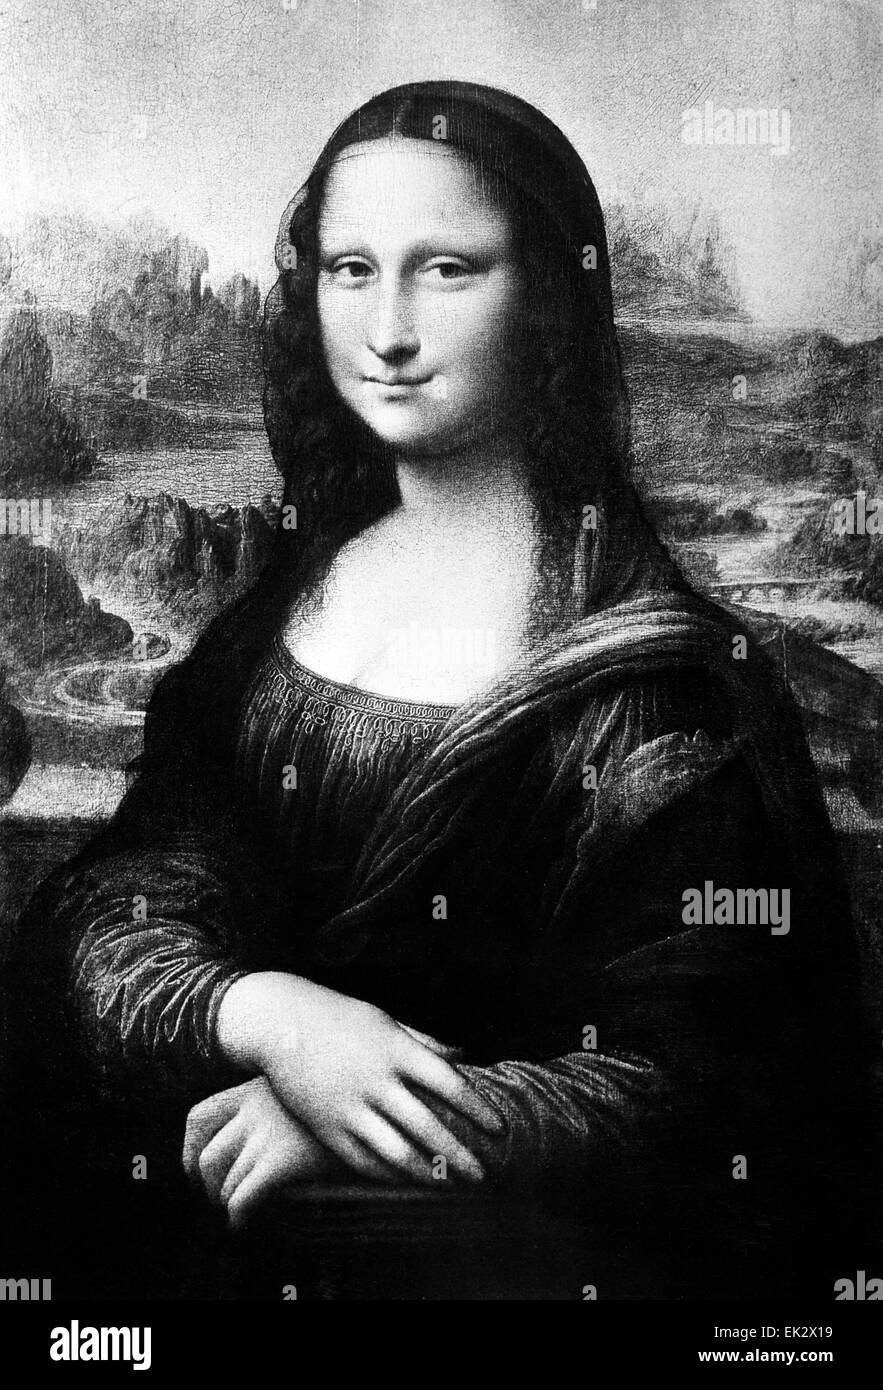 Mona Lisa Black And White Stock Photos Images Alamy